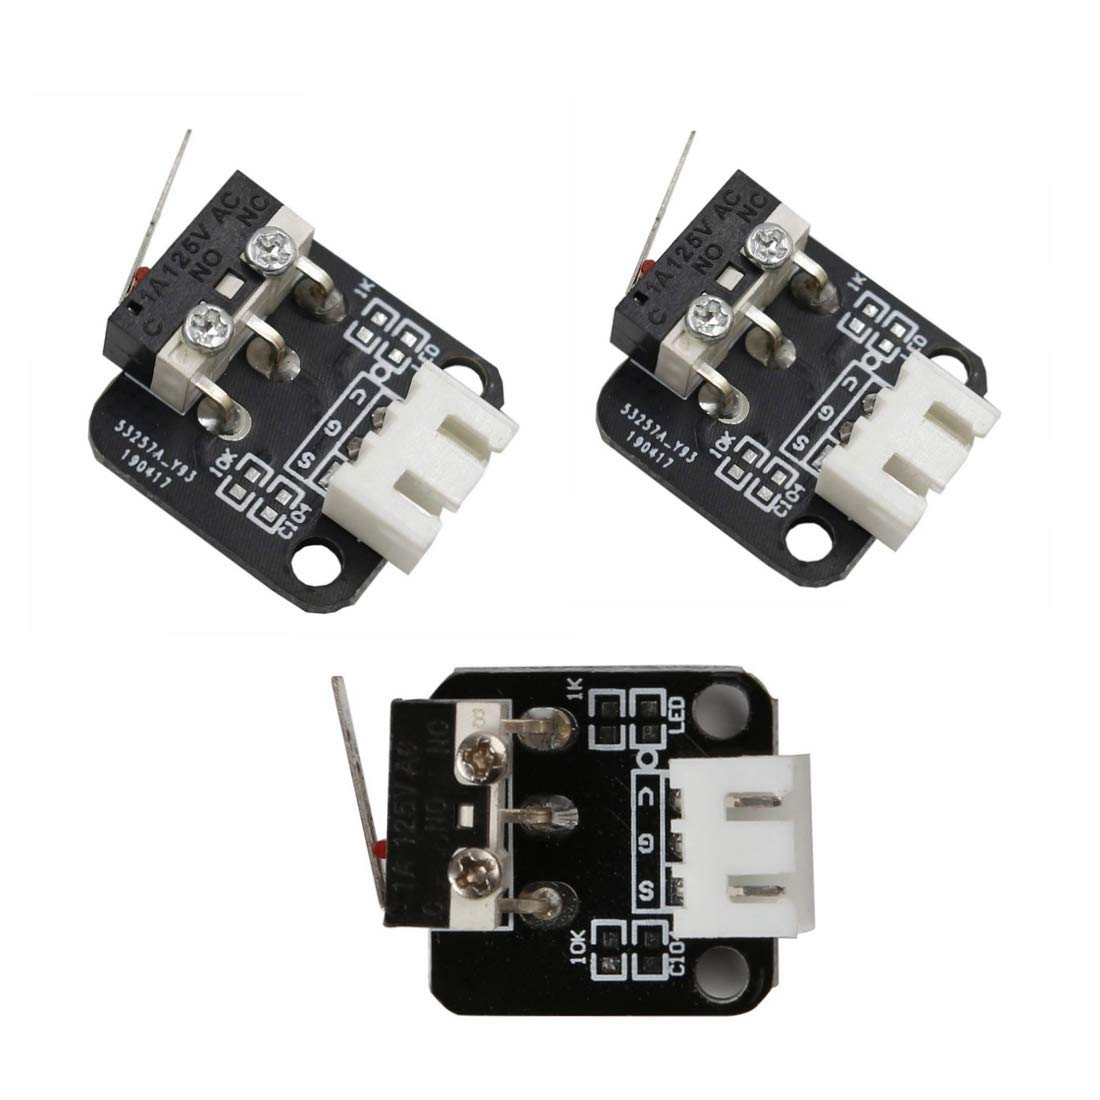 5Pcs 3D Printer X//Y//Z Axis End Stop Limit Switch Easy to Use for CR-10 Ender-3